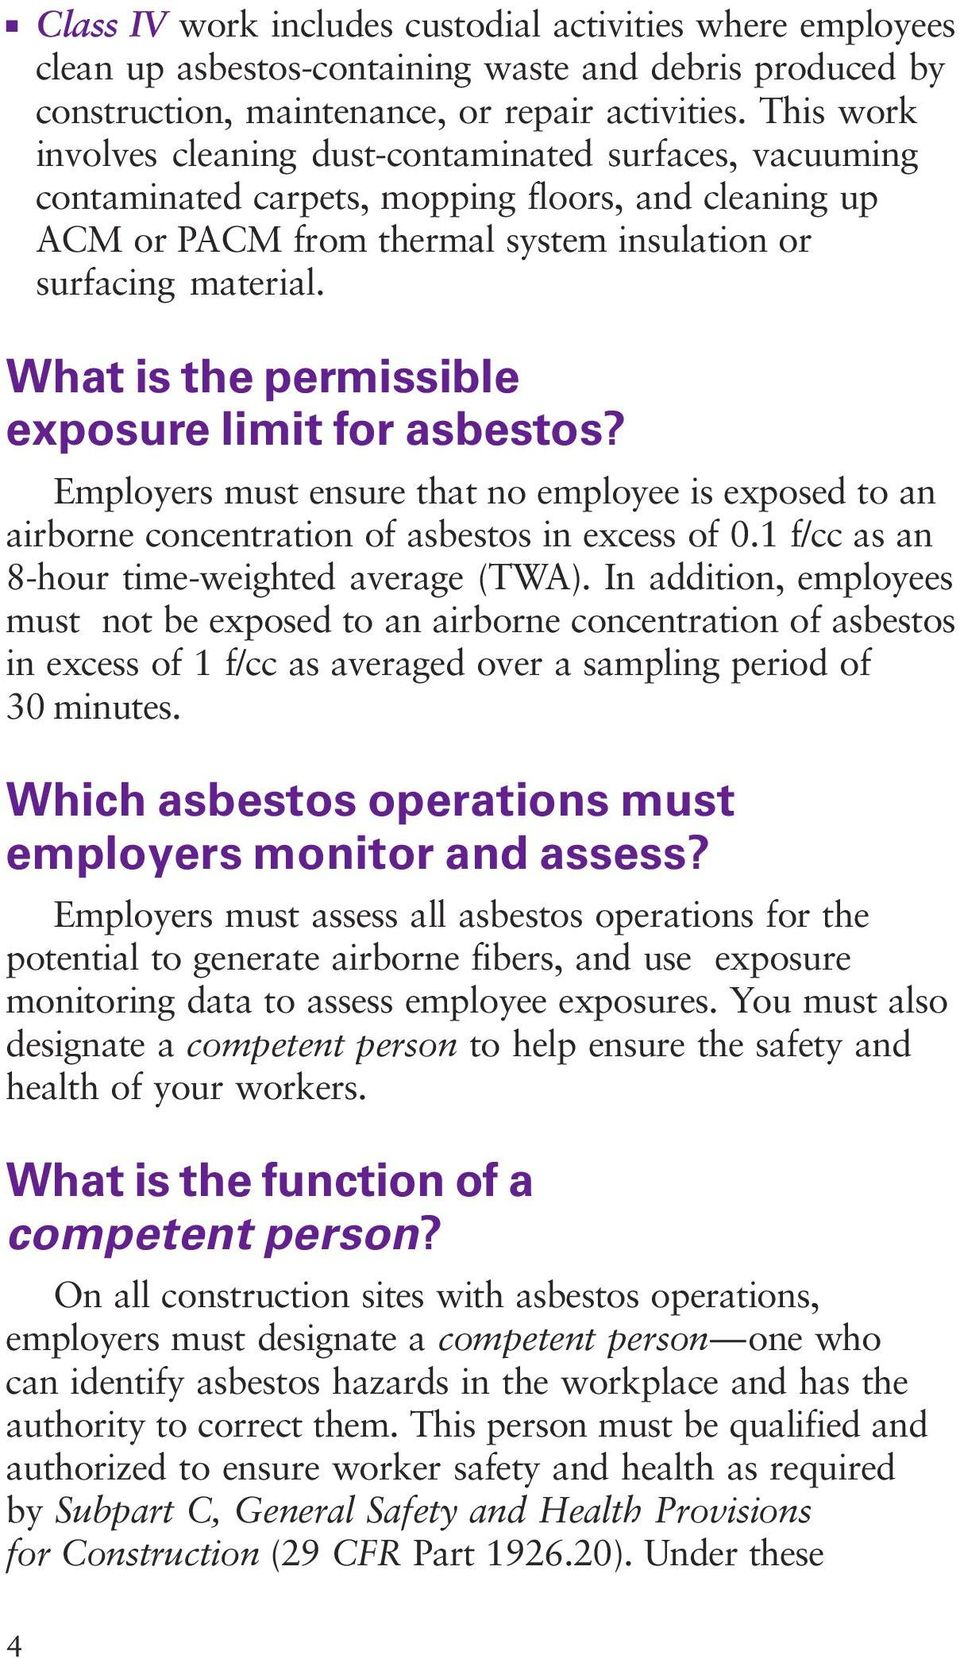 What is the permissible exposure limit for asbestos? Employers must ensure that no employee is exposed to an airborne concentration of asbestos in excess of 0.